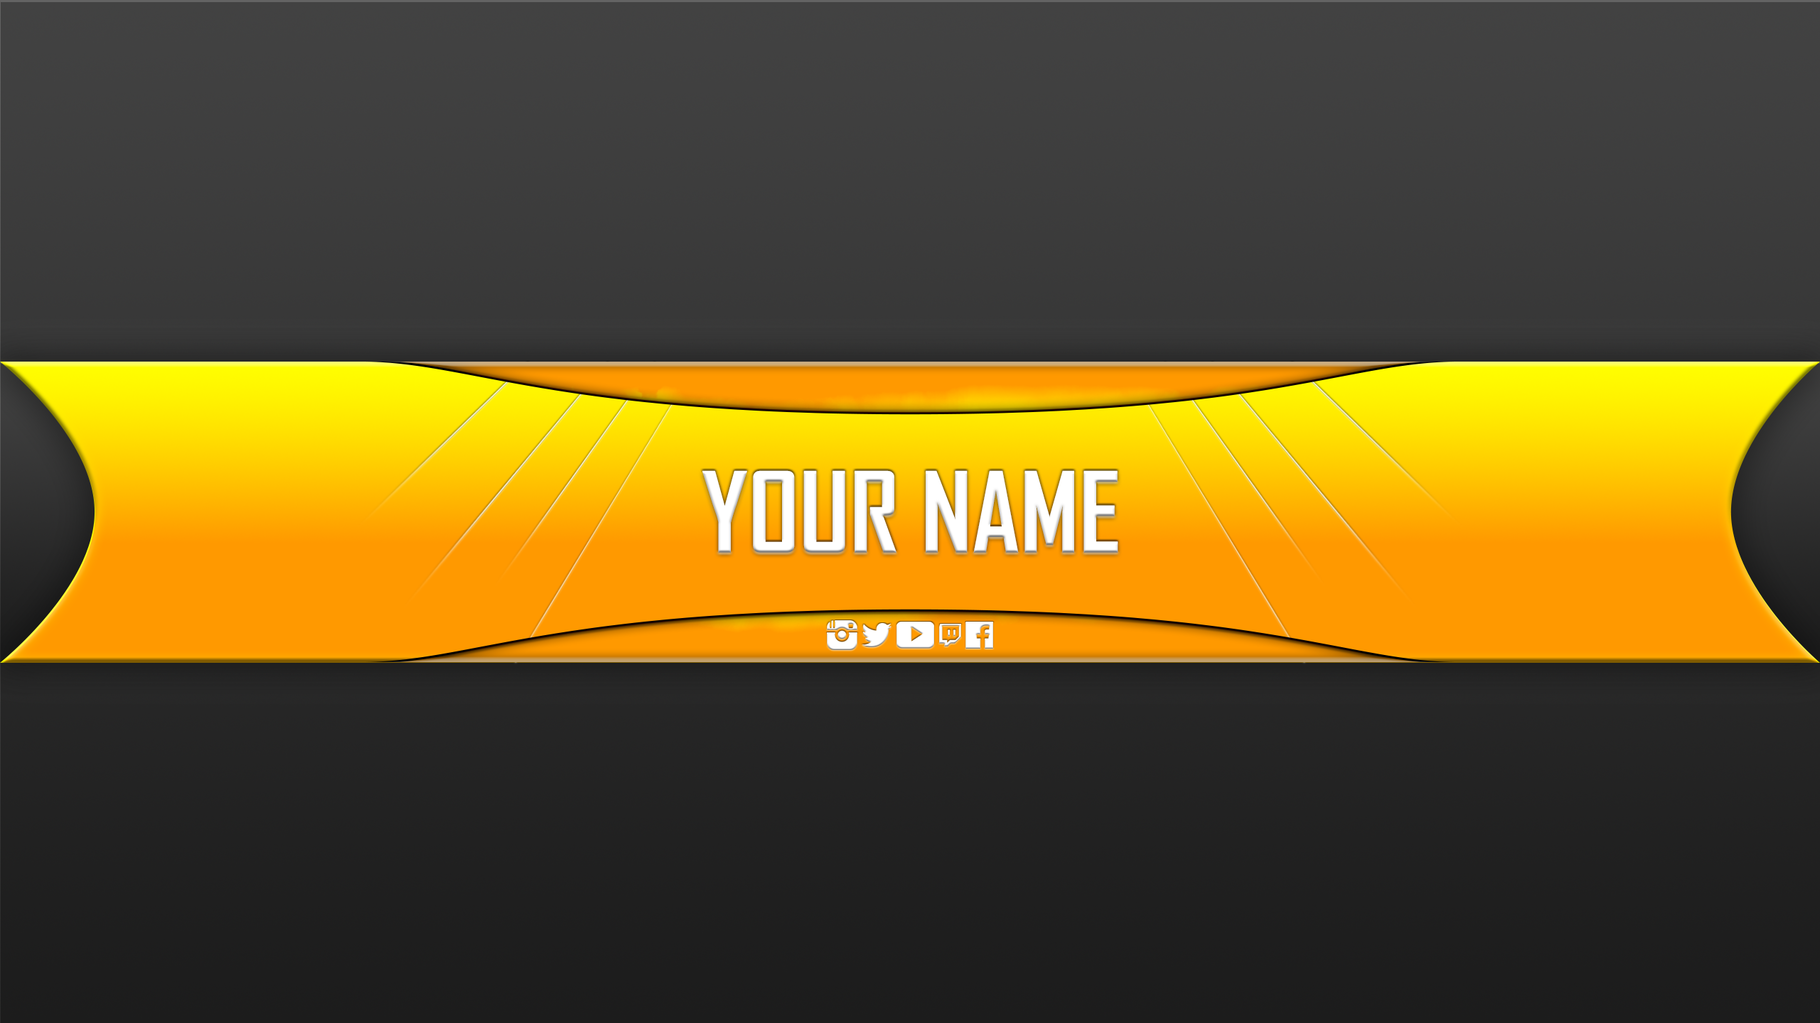 Blank youtube banner template